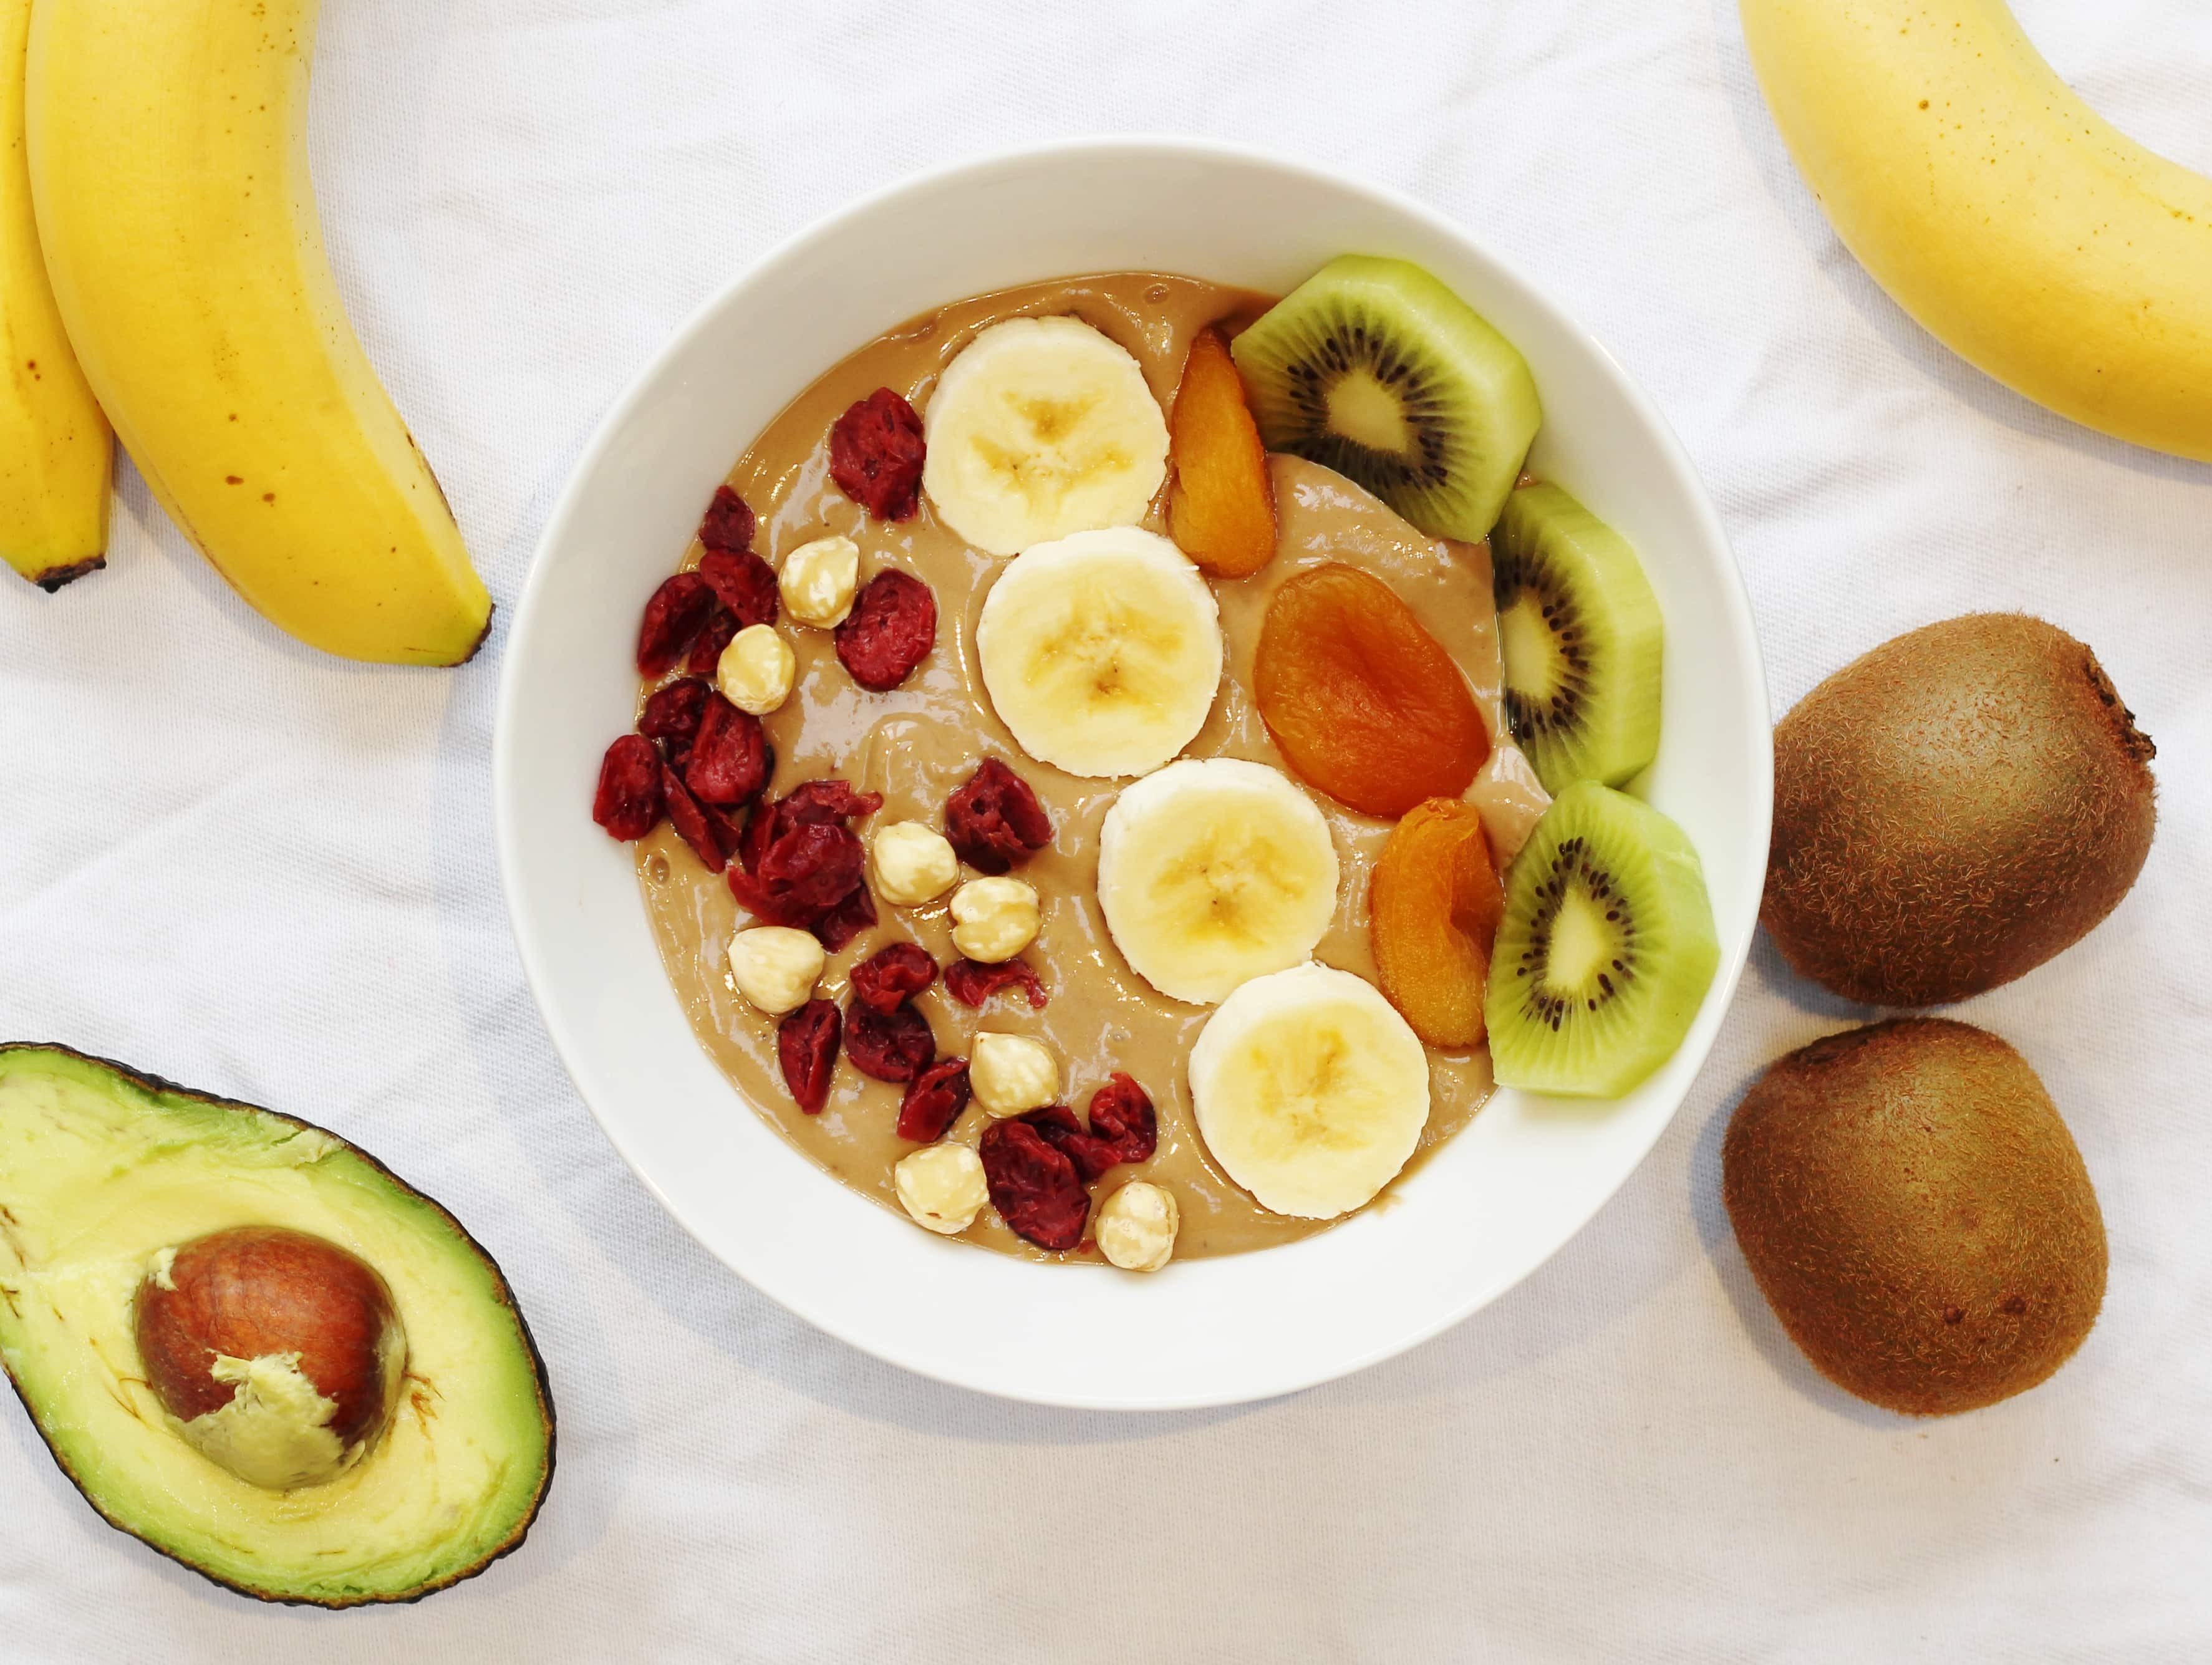 Nutella Smoothie Bowl with Banana and Avocado